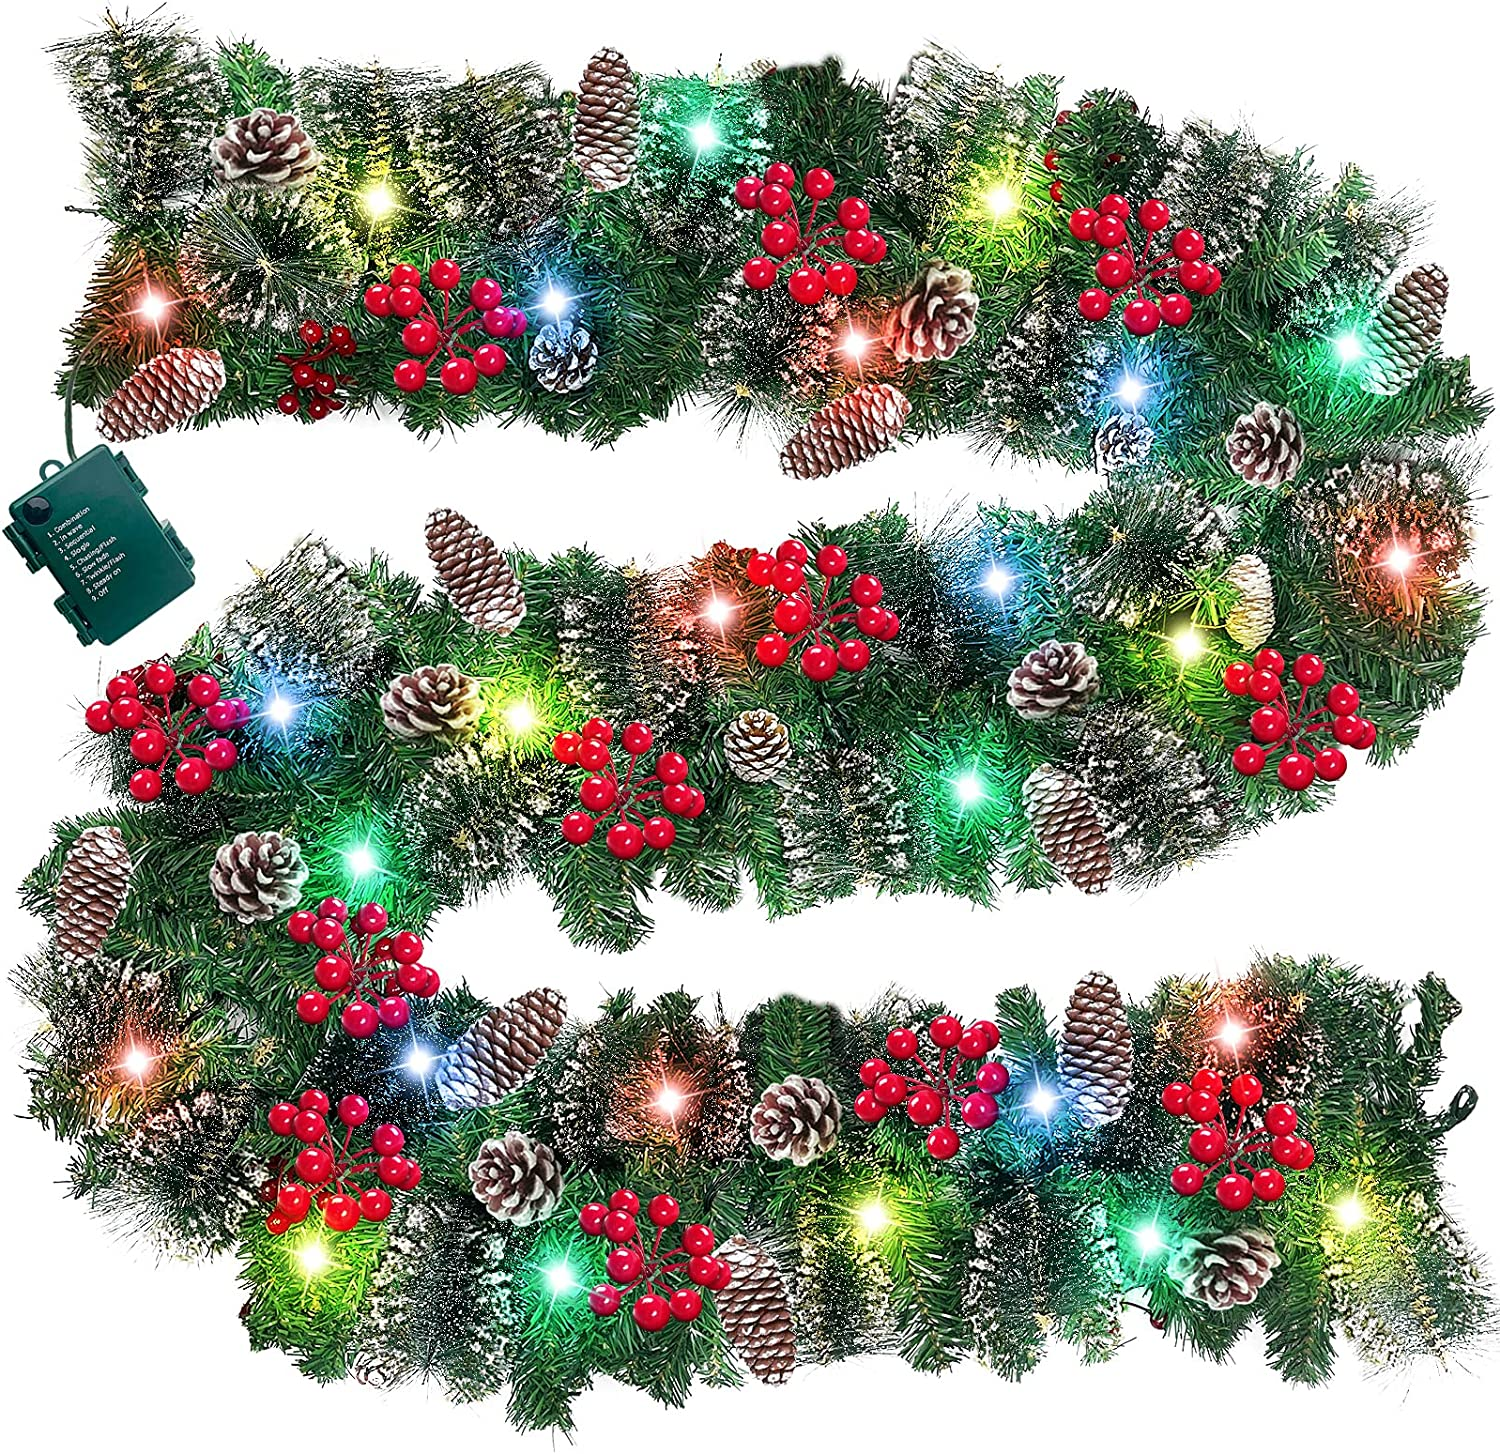 TURNMEON 9 Ft Prelit Artificial Christmas Garland Decor Timer 100 Lights 8 Modes Berry Snowy Bristle Pinecone Battery Operated Xmas Christmas Decoration Mantle Fireplace Home Indoor Outdoor,Color